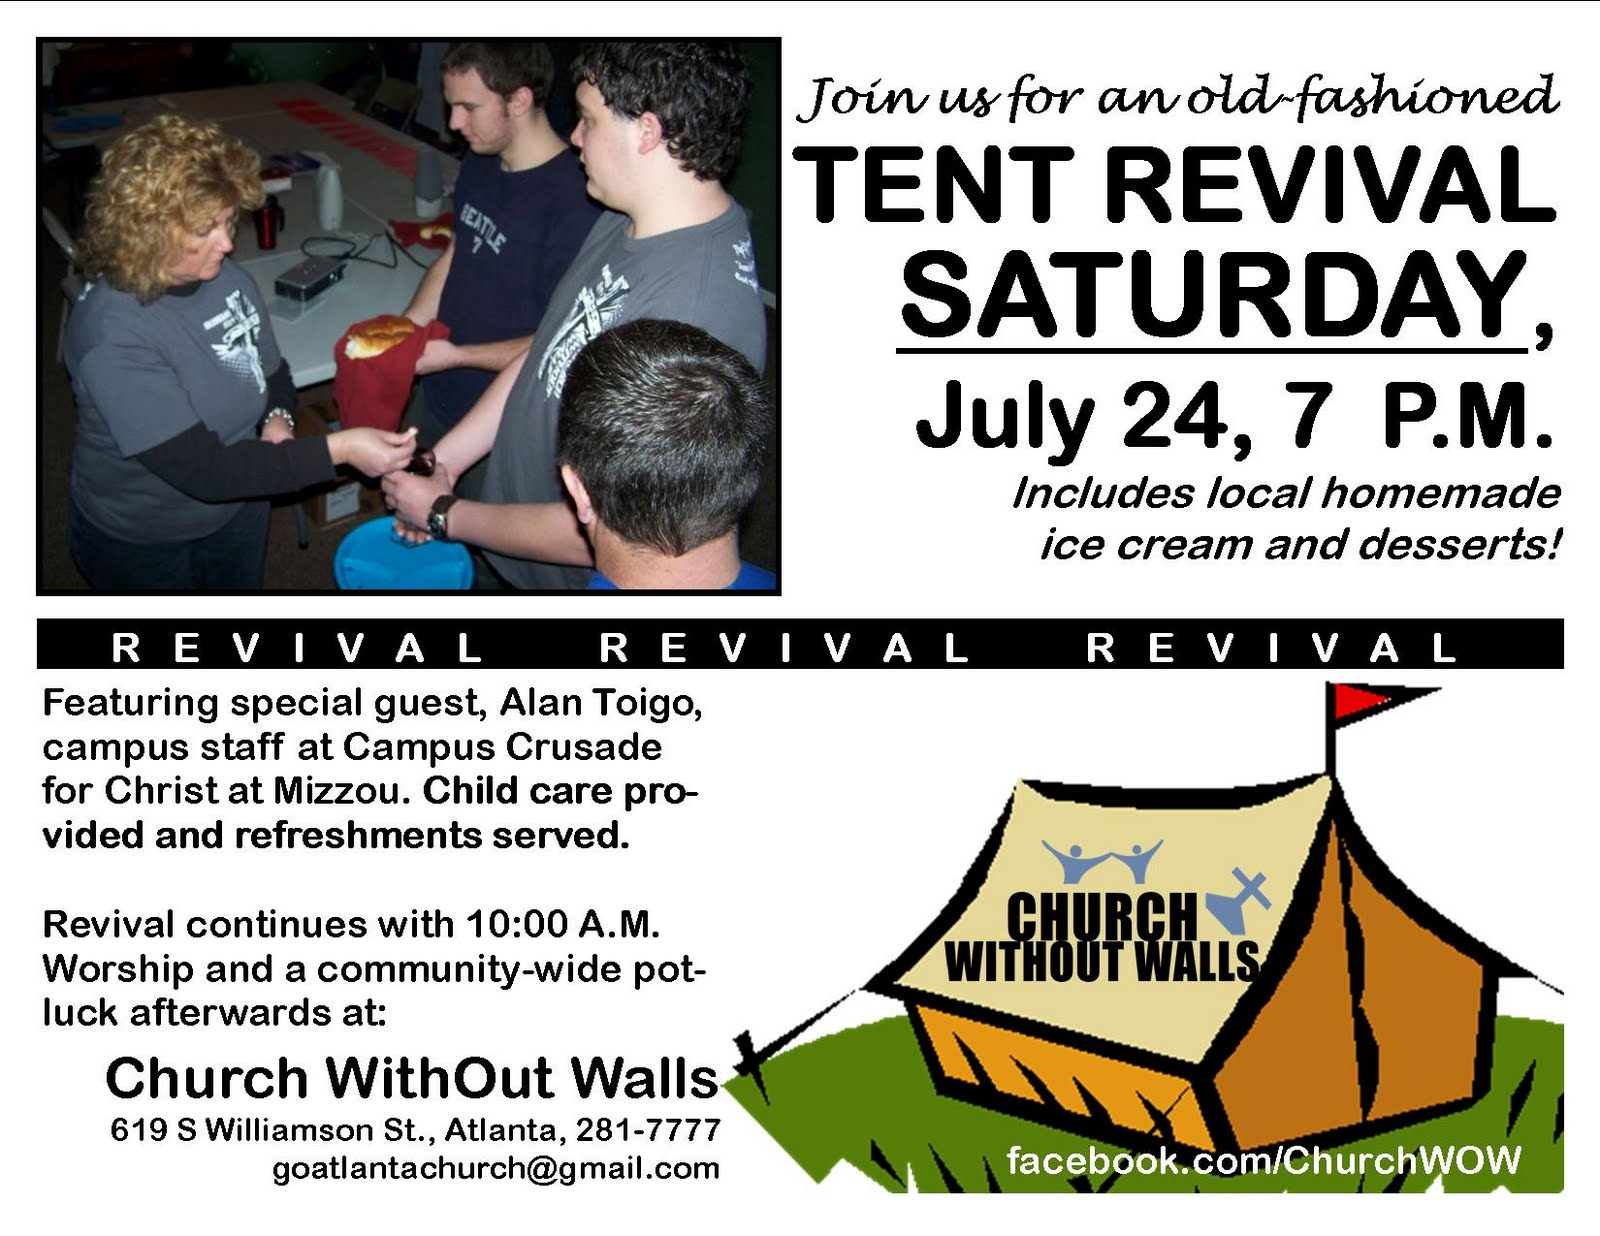 An old fashioned tent revival will be held at Church WithOut Walls in Atlanta on Saturday July 24 2010 at 700 P.M. The public is invited to attend.  sc 1 st  Church WithOut Walls Atlanta Missouri - Blogspot & Old-Fashioned Tent Revival Coming to Atlanta | Church WithOut ...